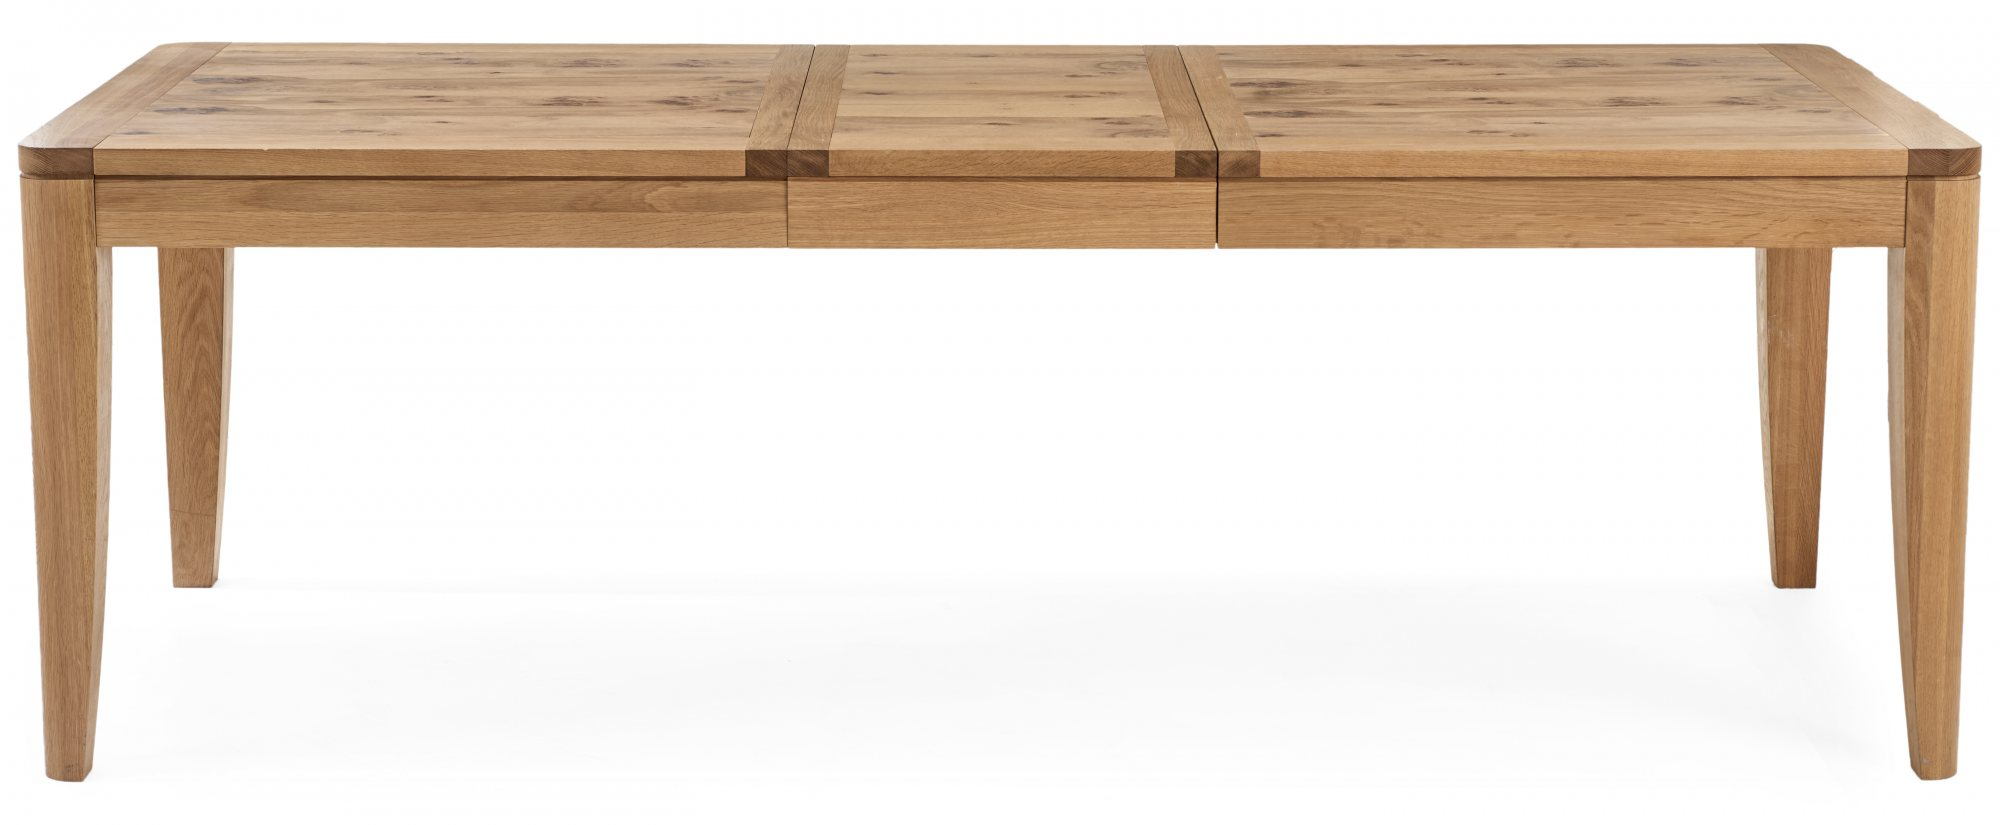 WILLOWILLOW PARK DINING LARGE EXTENDING DINING TABLE (OPENED) - L230cm x D95cm x H77cm